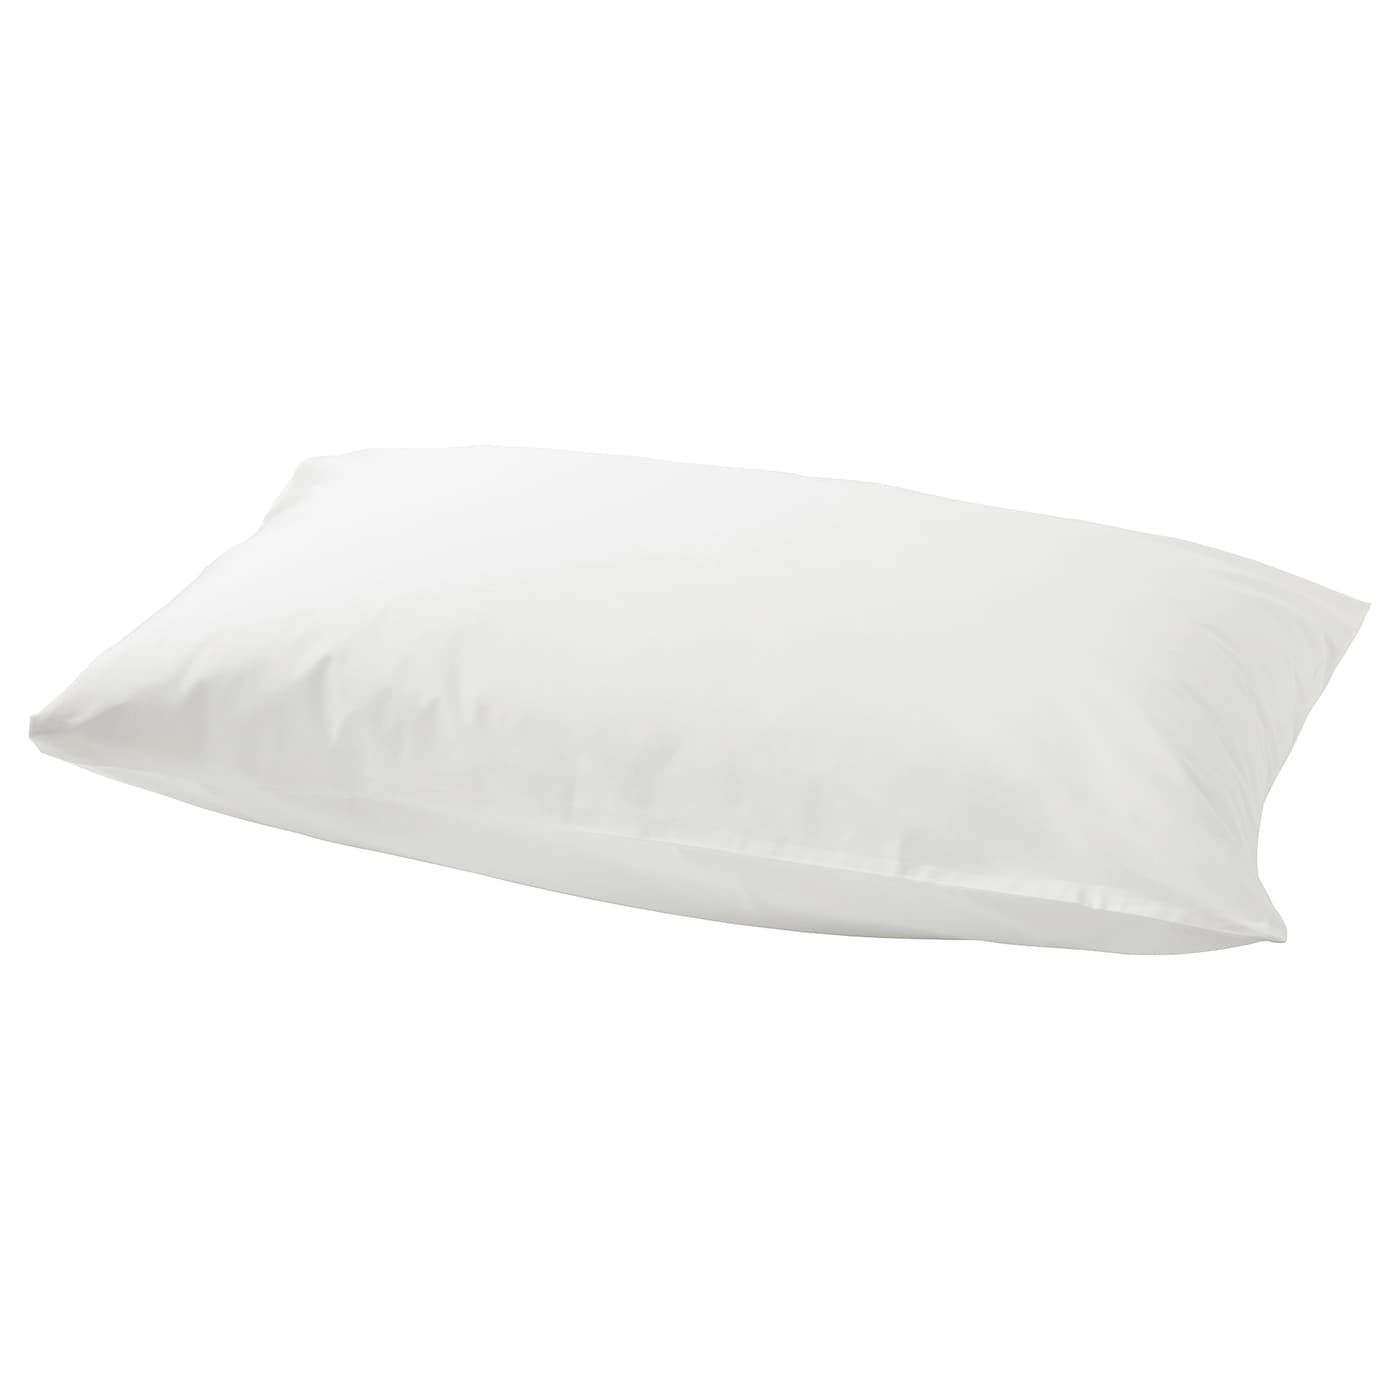 IKEA SÖMNTUTA pillowcase Made in 100% cotton - a natural and durable material.